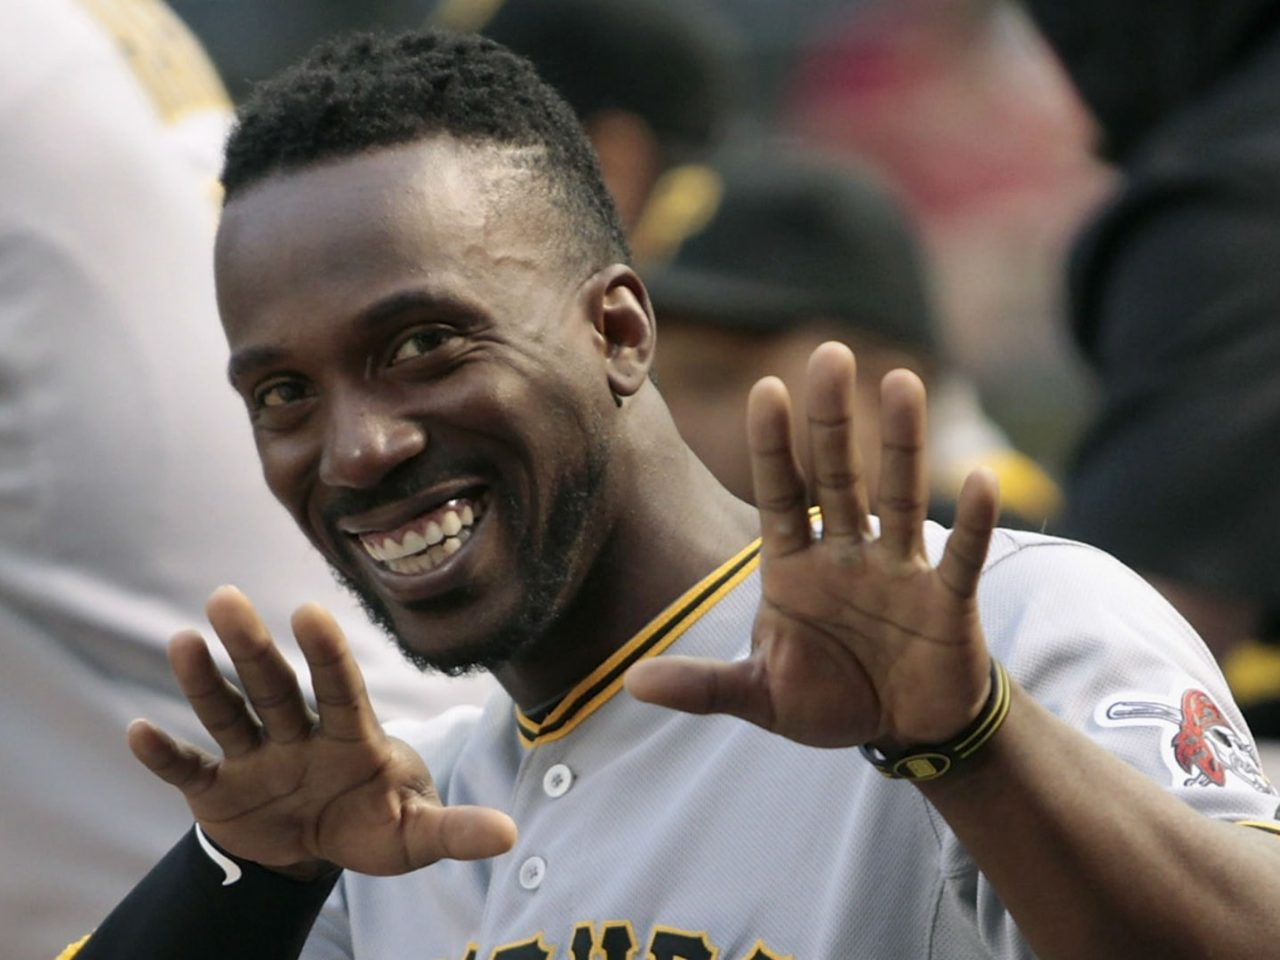 Red Sox Fans are Not Racist According to Andrew McCutchen